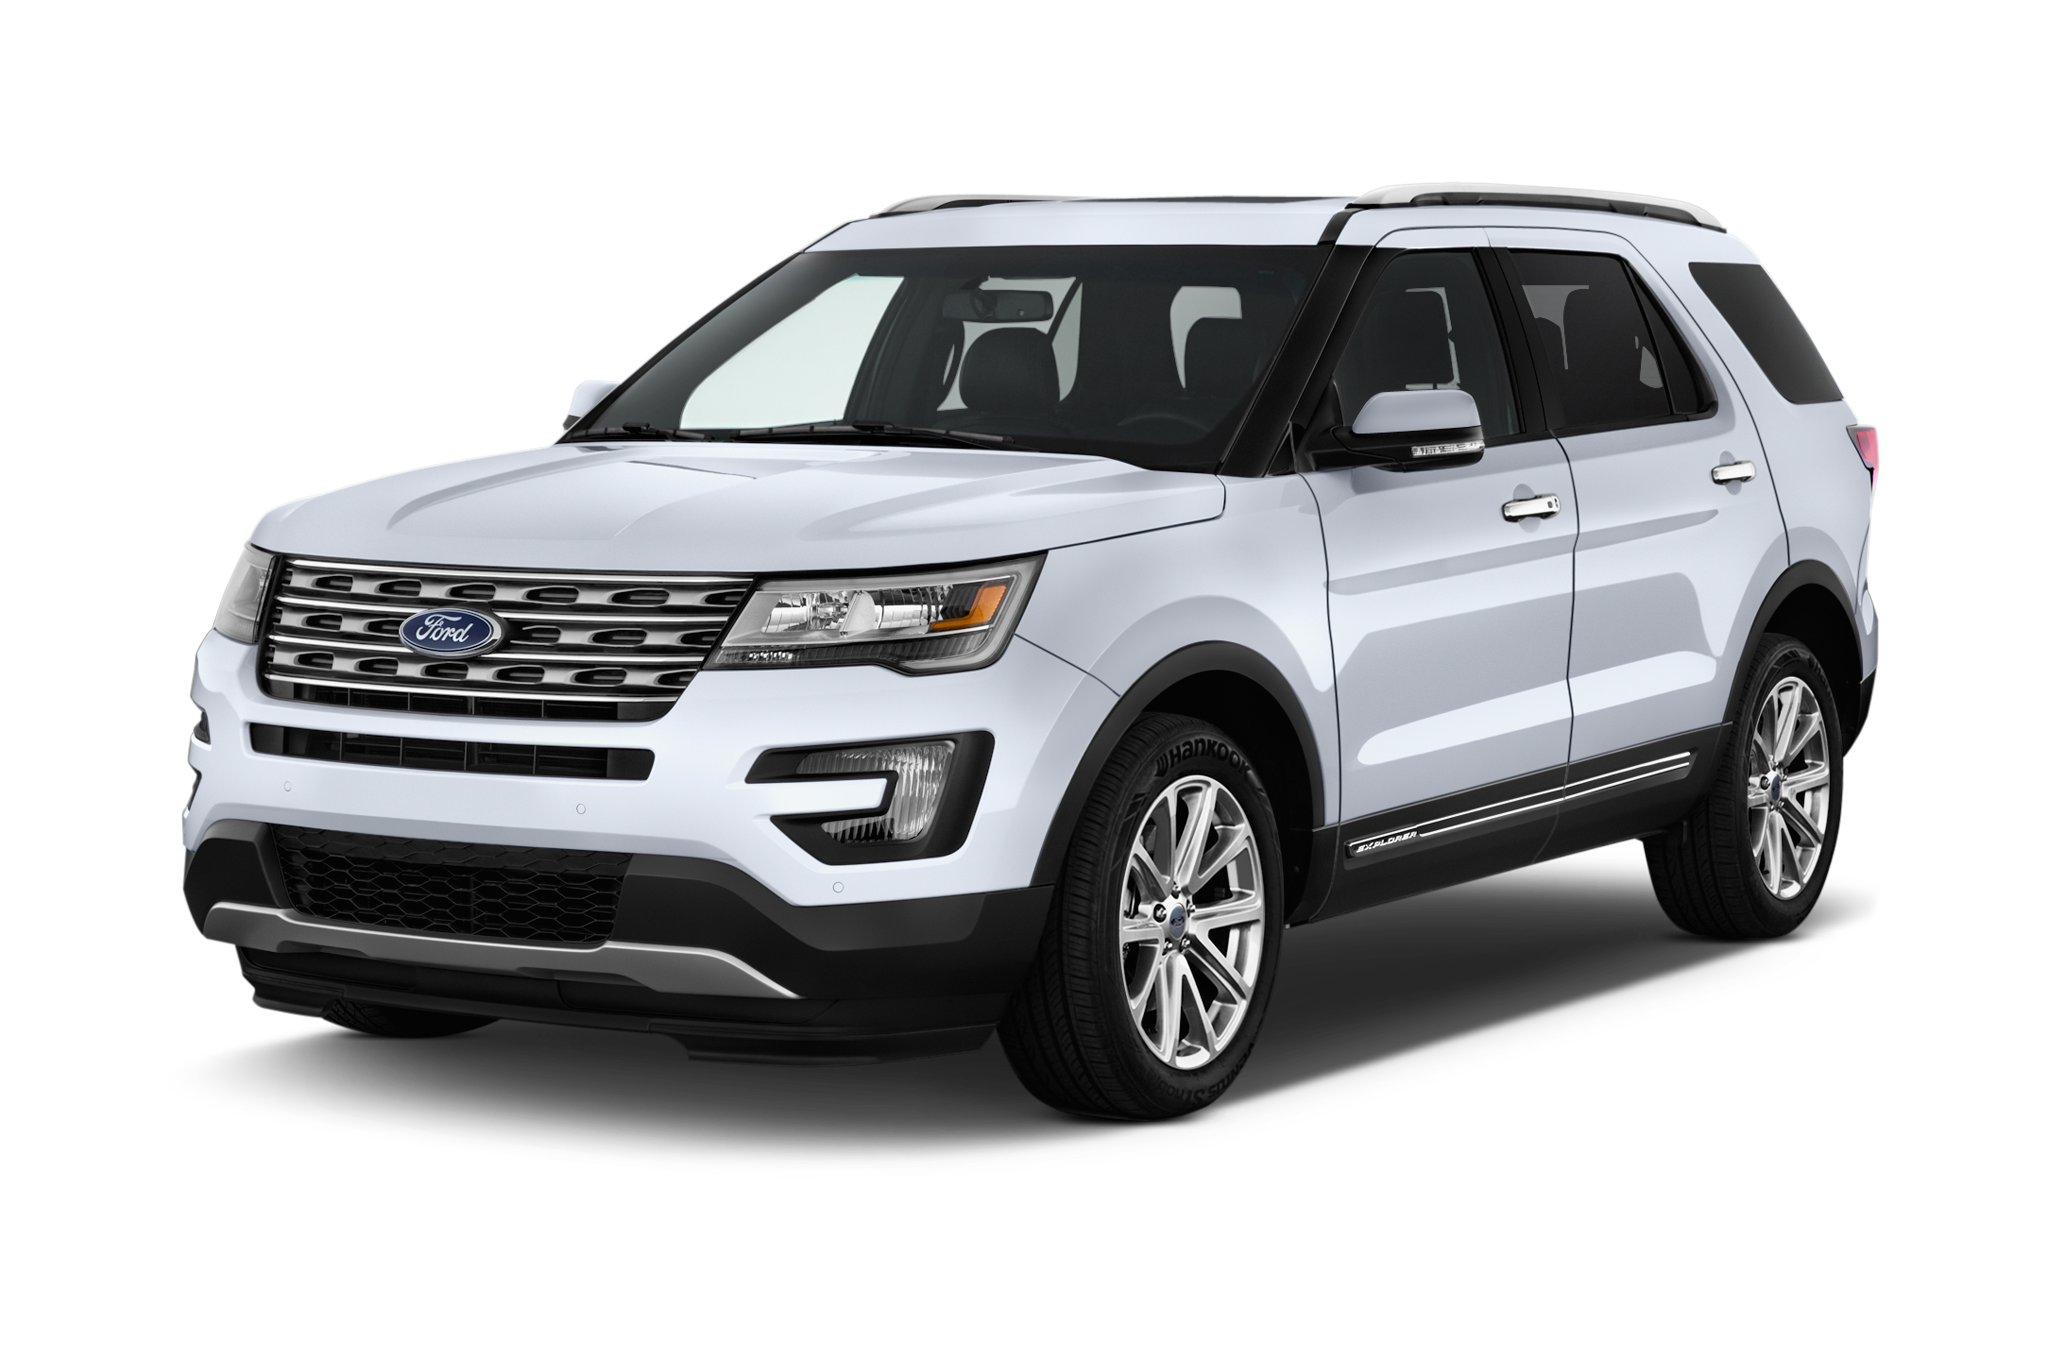 2016 ford explorer limited 4wd exterior features msn autos. Black Bedroom Furniture Sets. Home Design Ideas